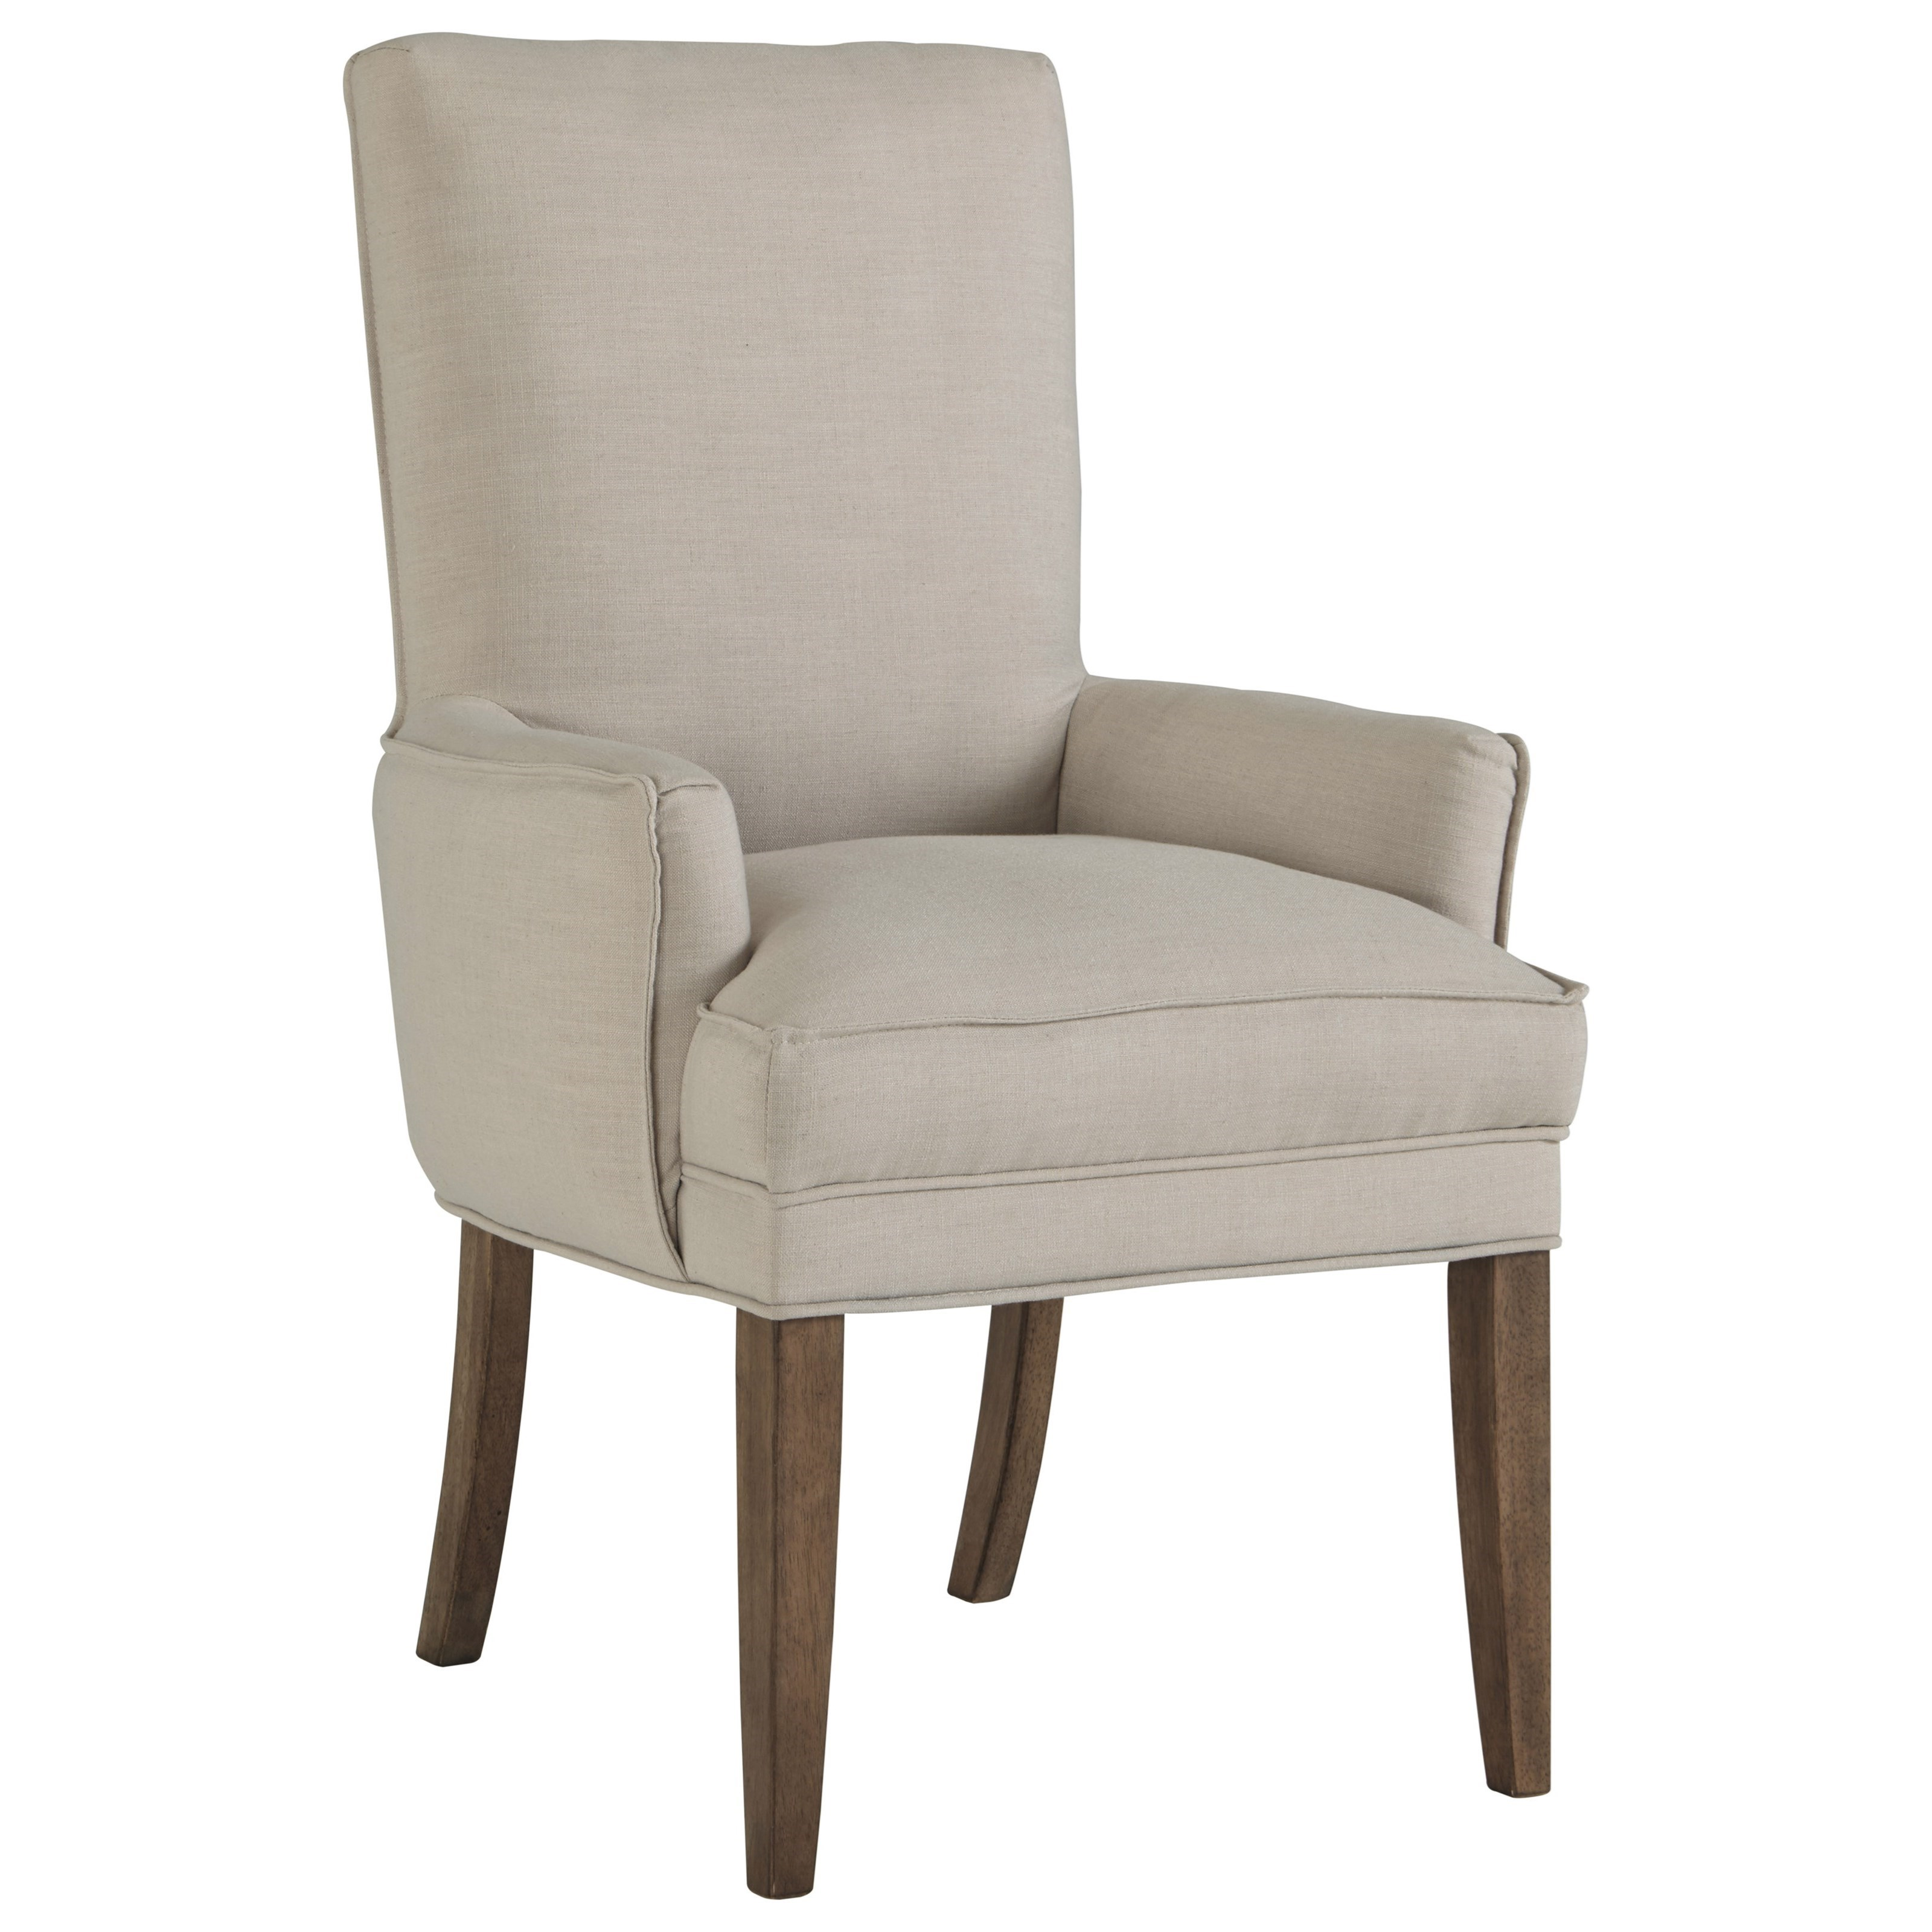 Grindleburg Dining Upholstered Arm Chair by Signature Design by Ashley at Lapeer Furniture & Mattress Center